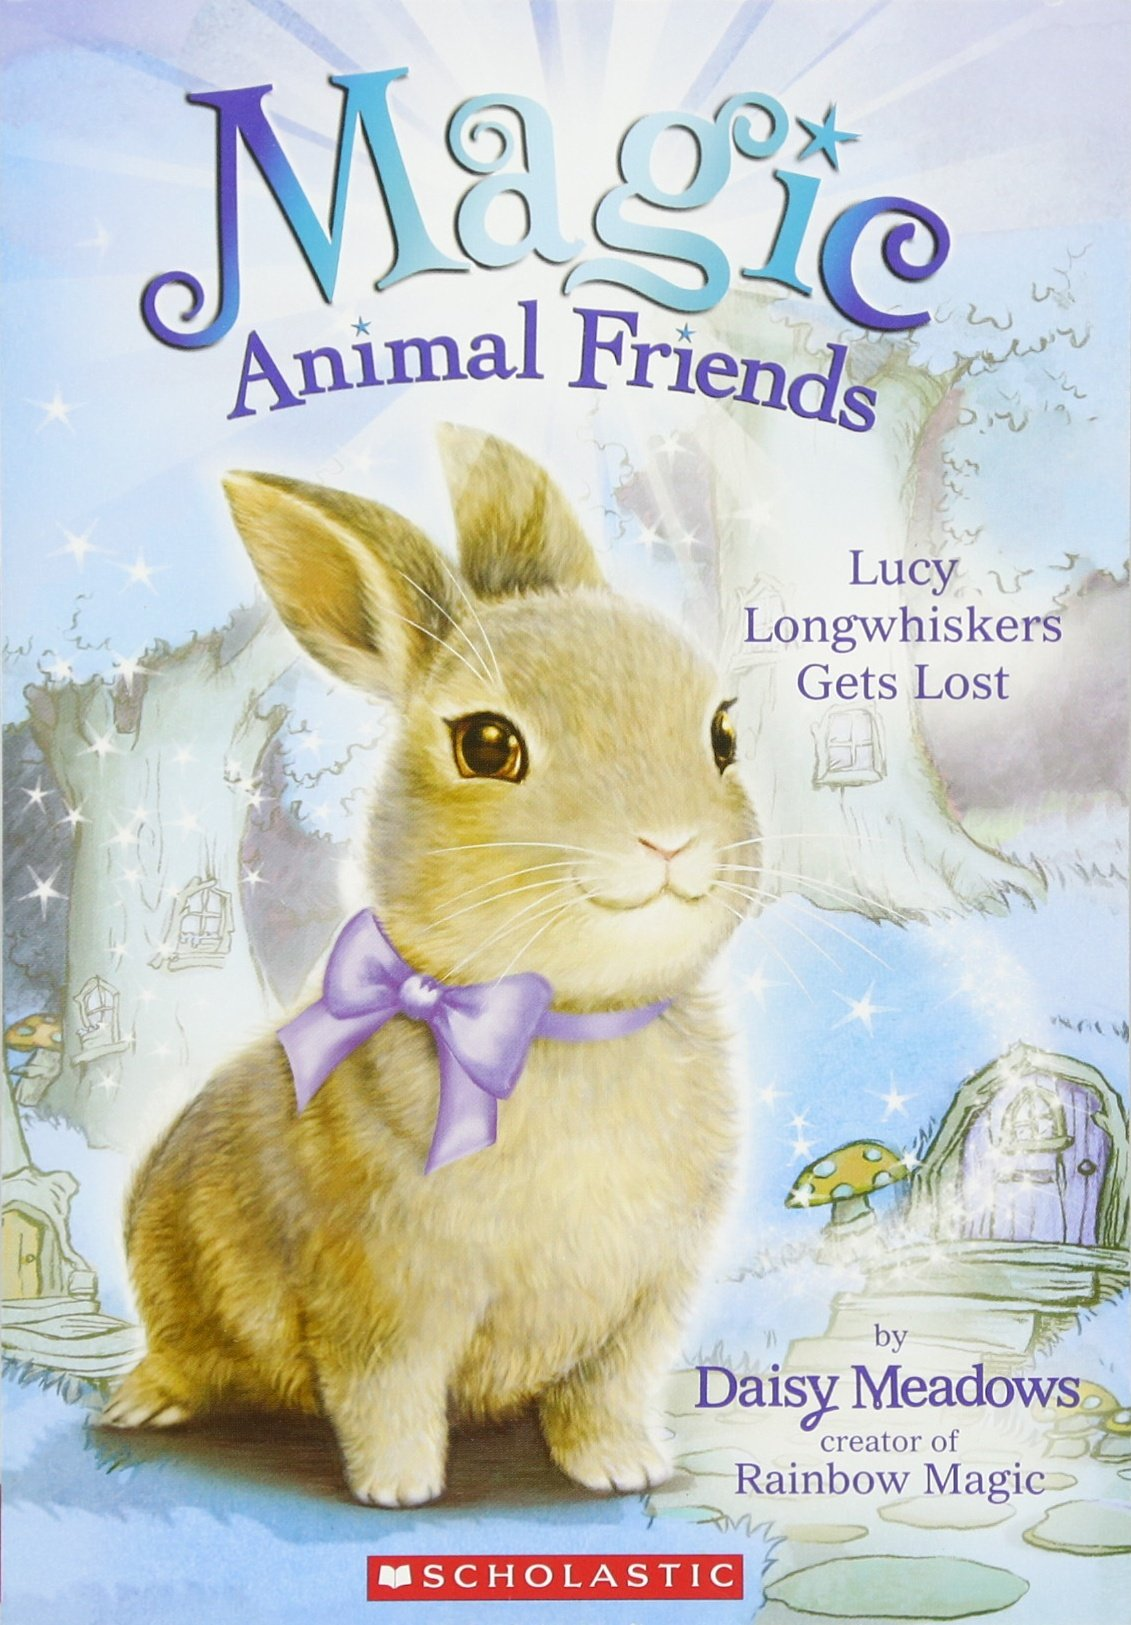 Lucy Longwhiskers Gets Lost (Magic Animal Friends #1) pdf epub